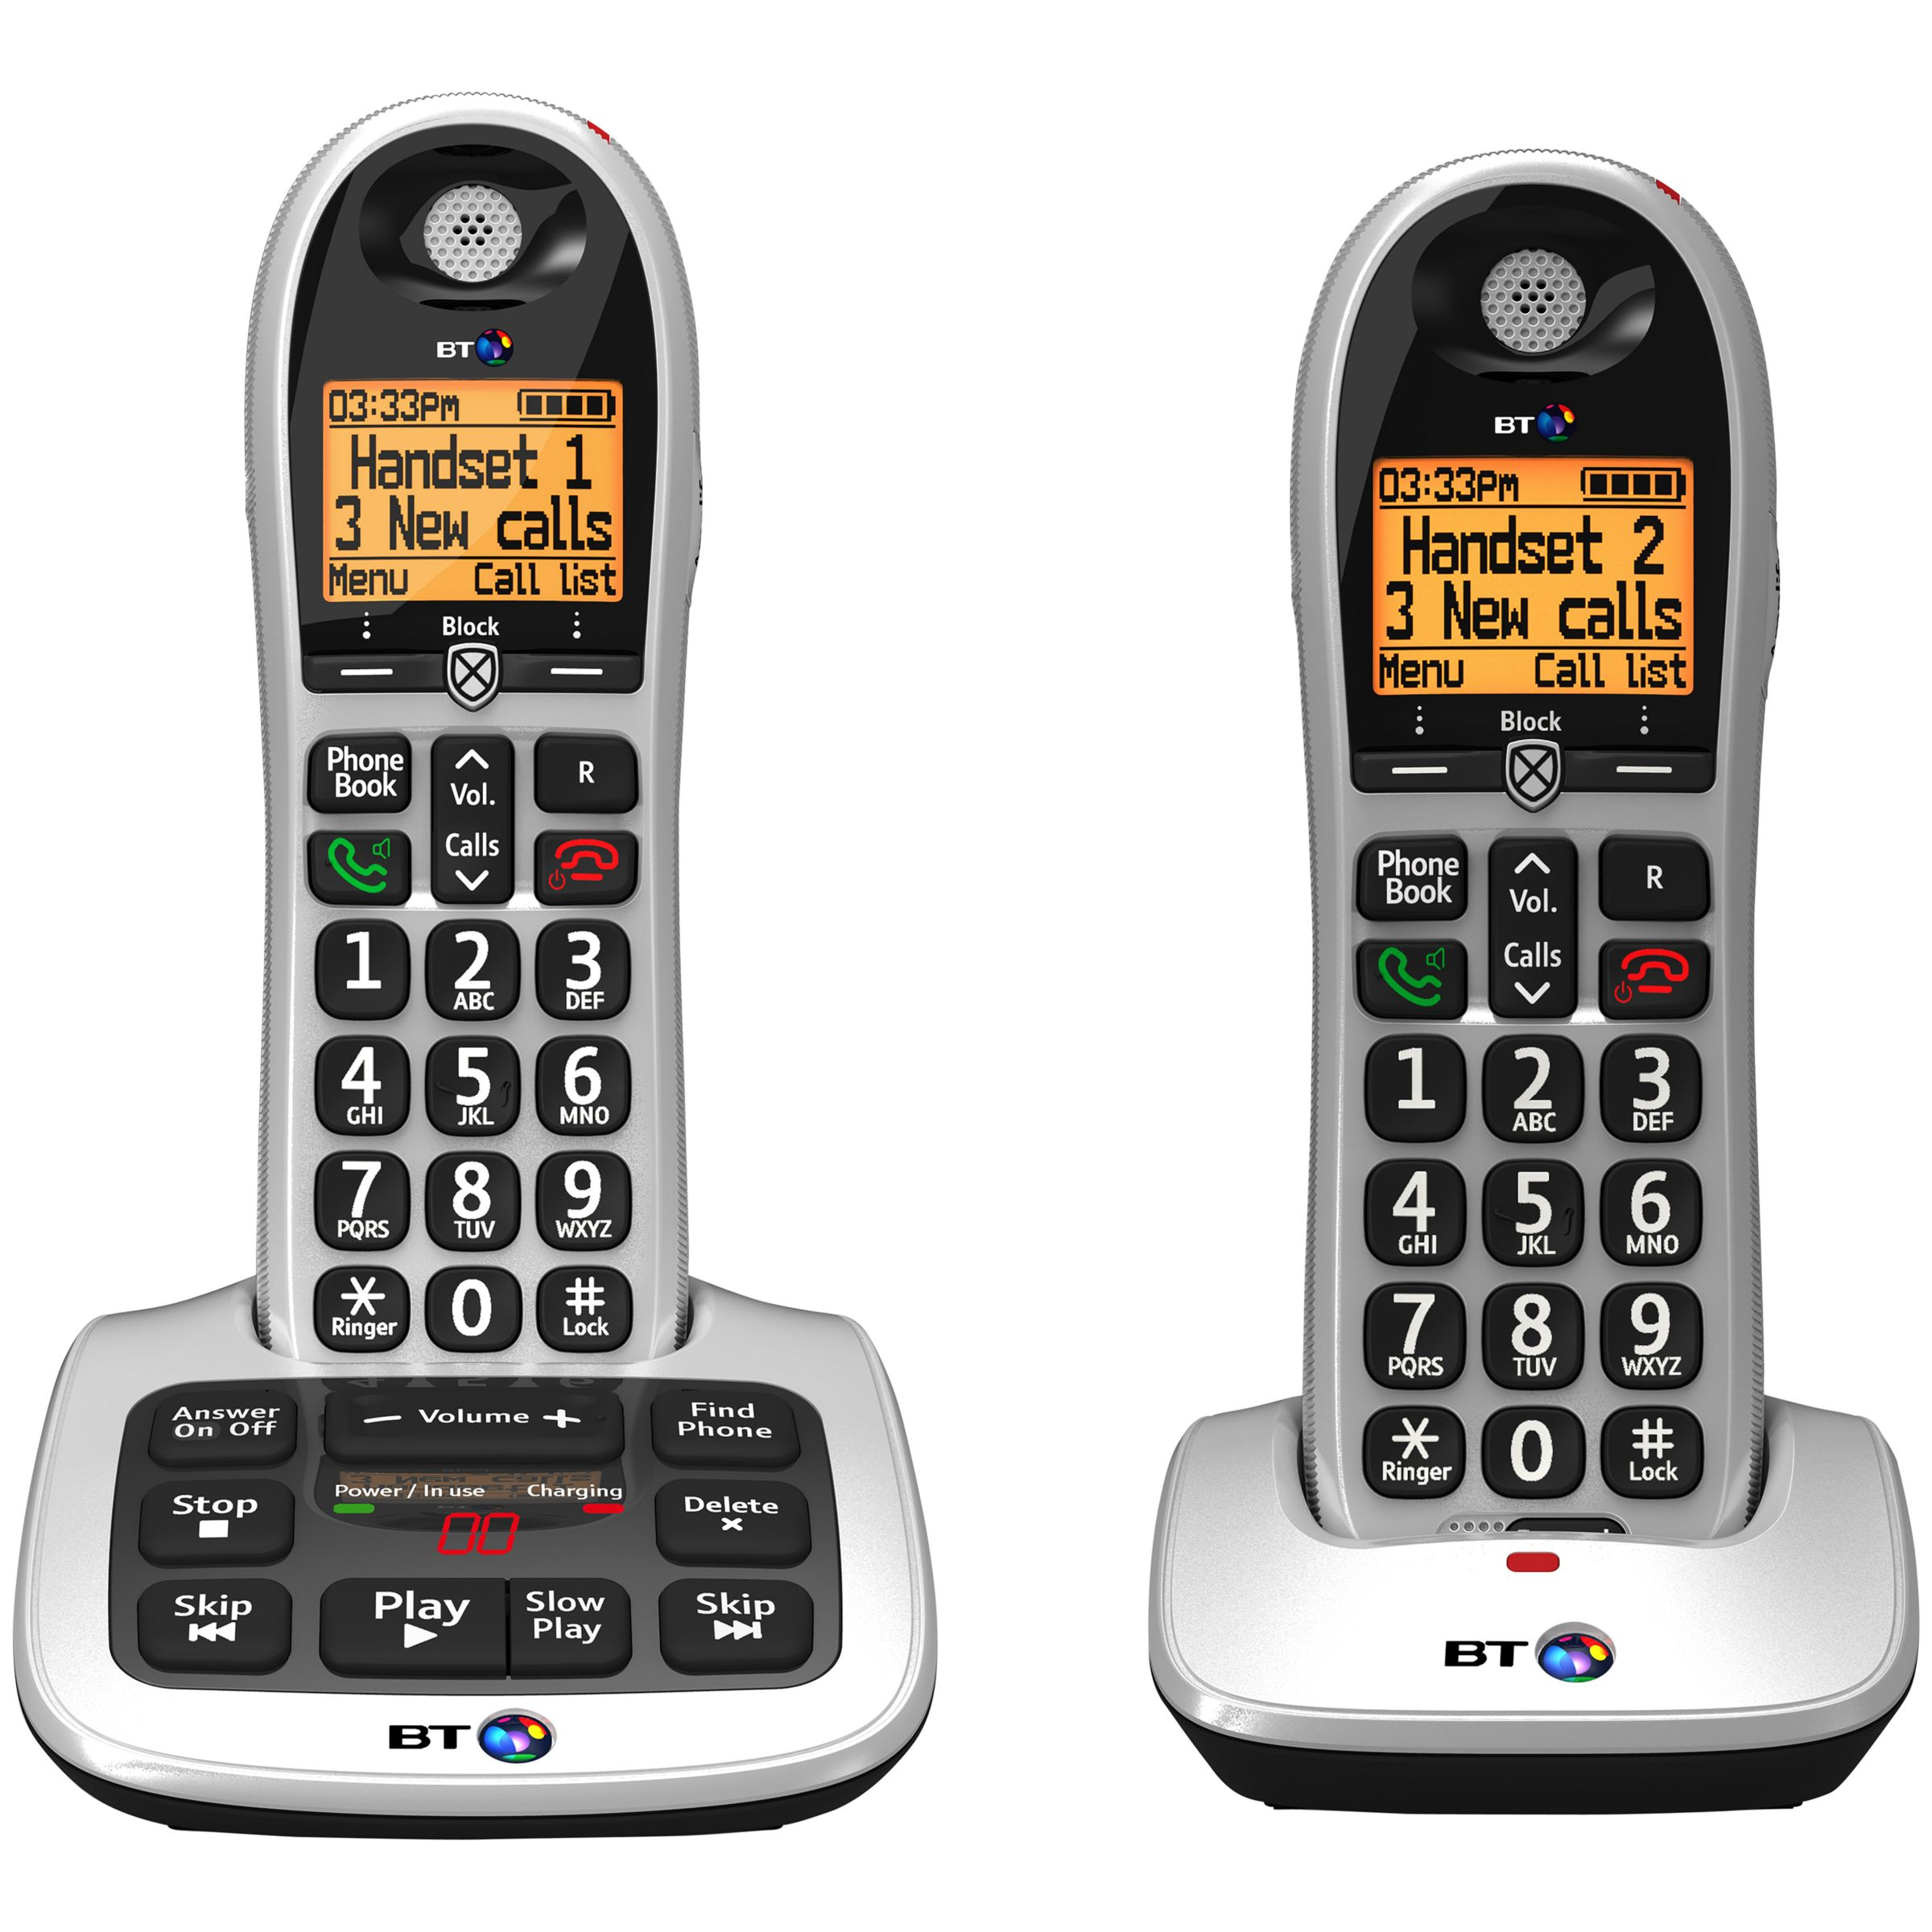 BT BT 4600 Big Button Digital Cordless Phone With Advanced Call Blocking & Answering Machine, Twin DECT